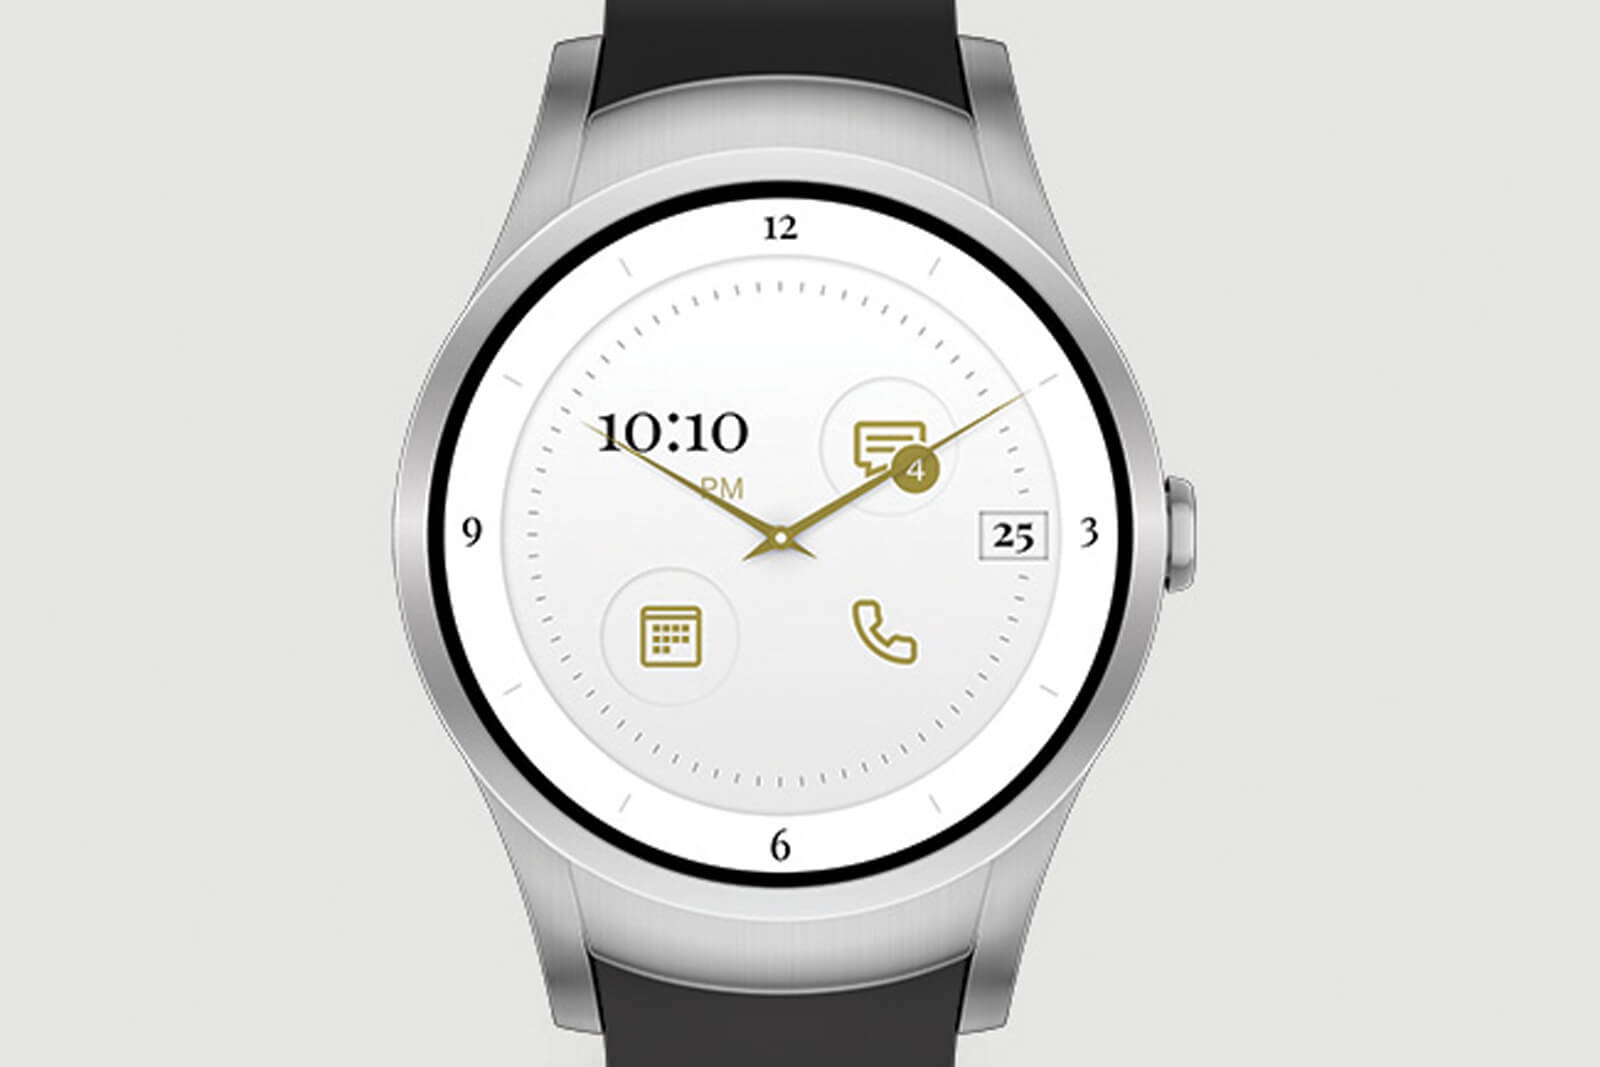 verizon eigene smartwatch wird im m rz vorgestellt. Black Bedroom Furniture Sets. Home Design Ideas